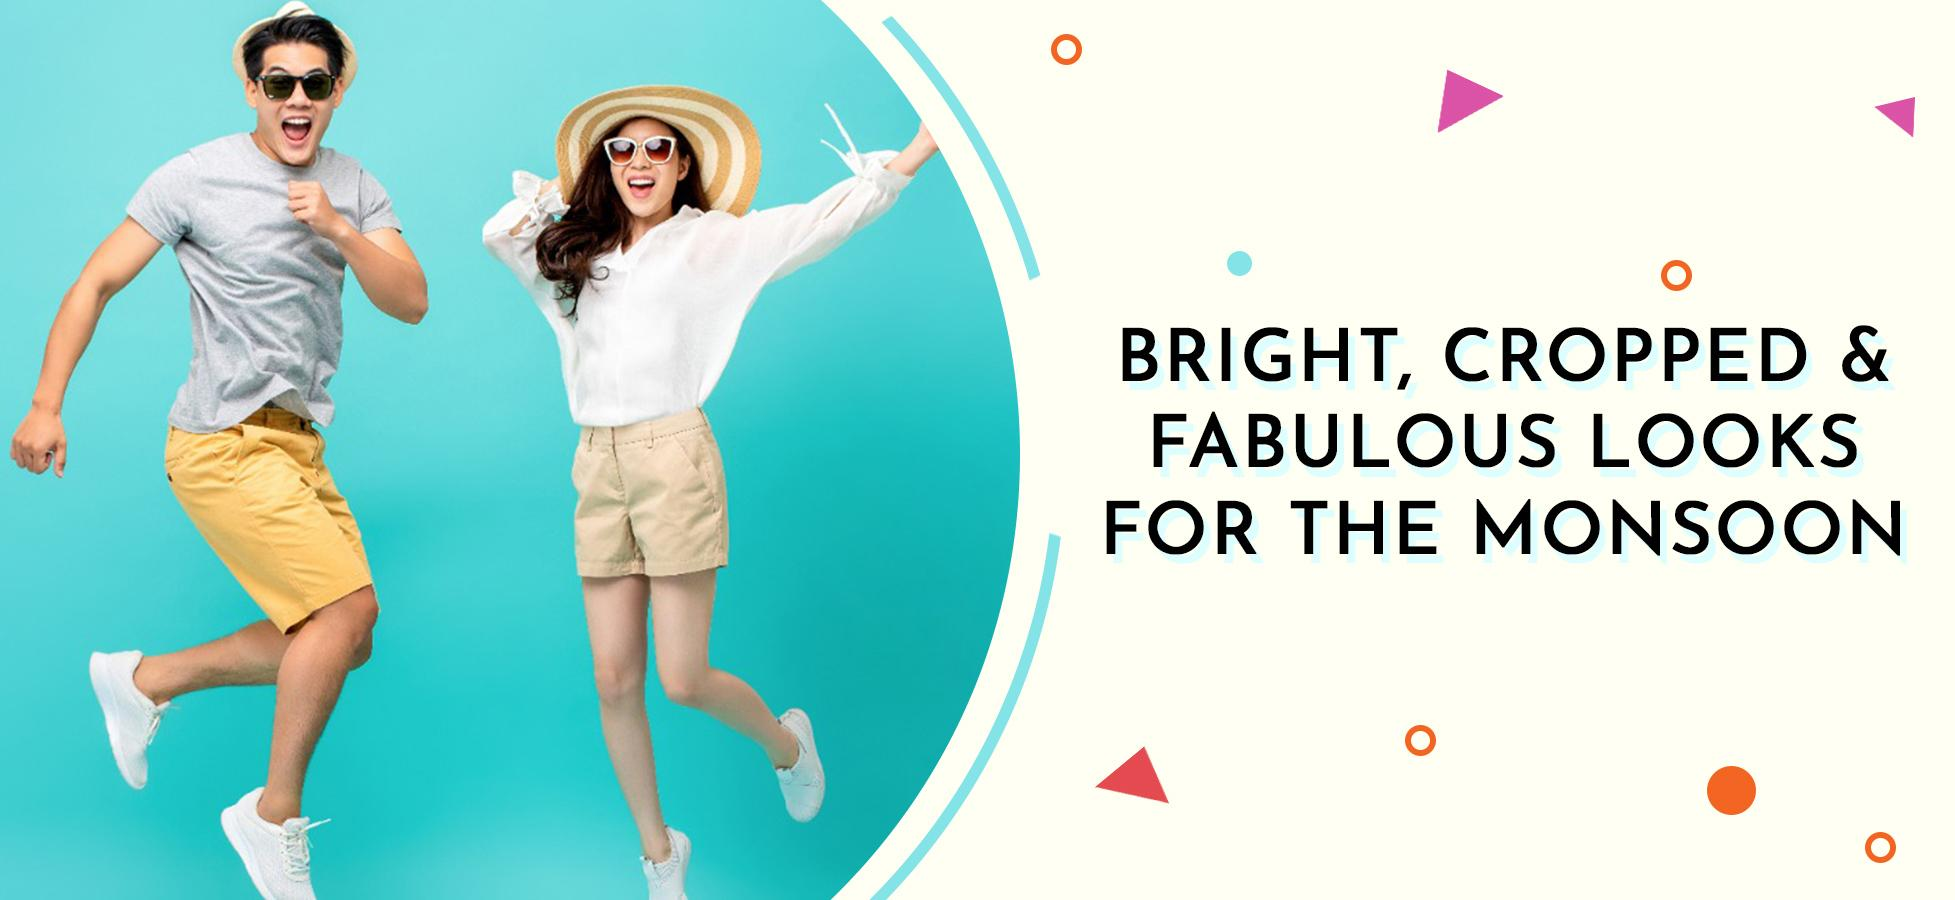 Nail Your Look with Stylish Monsoon trends